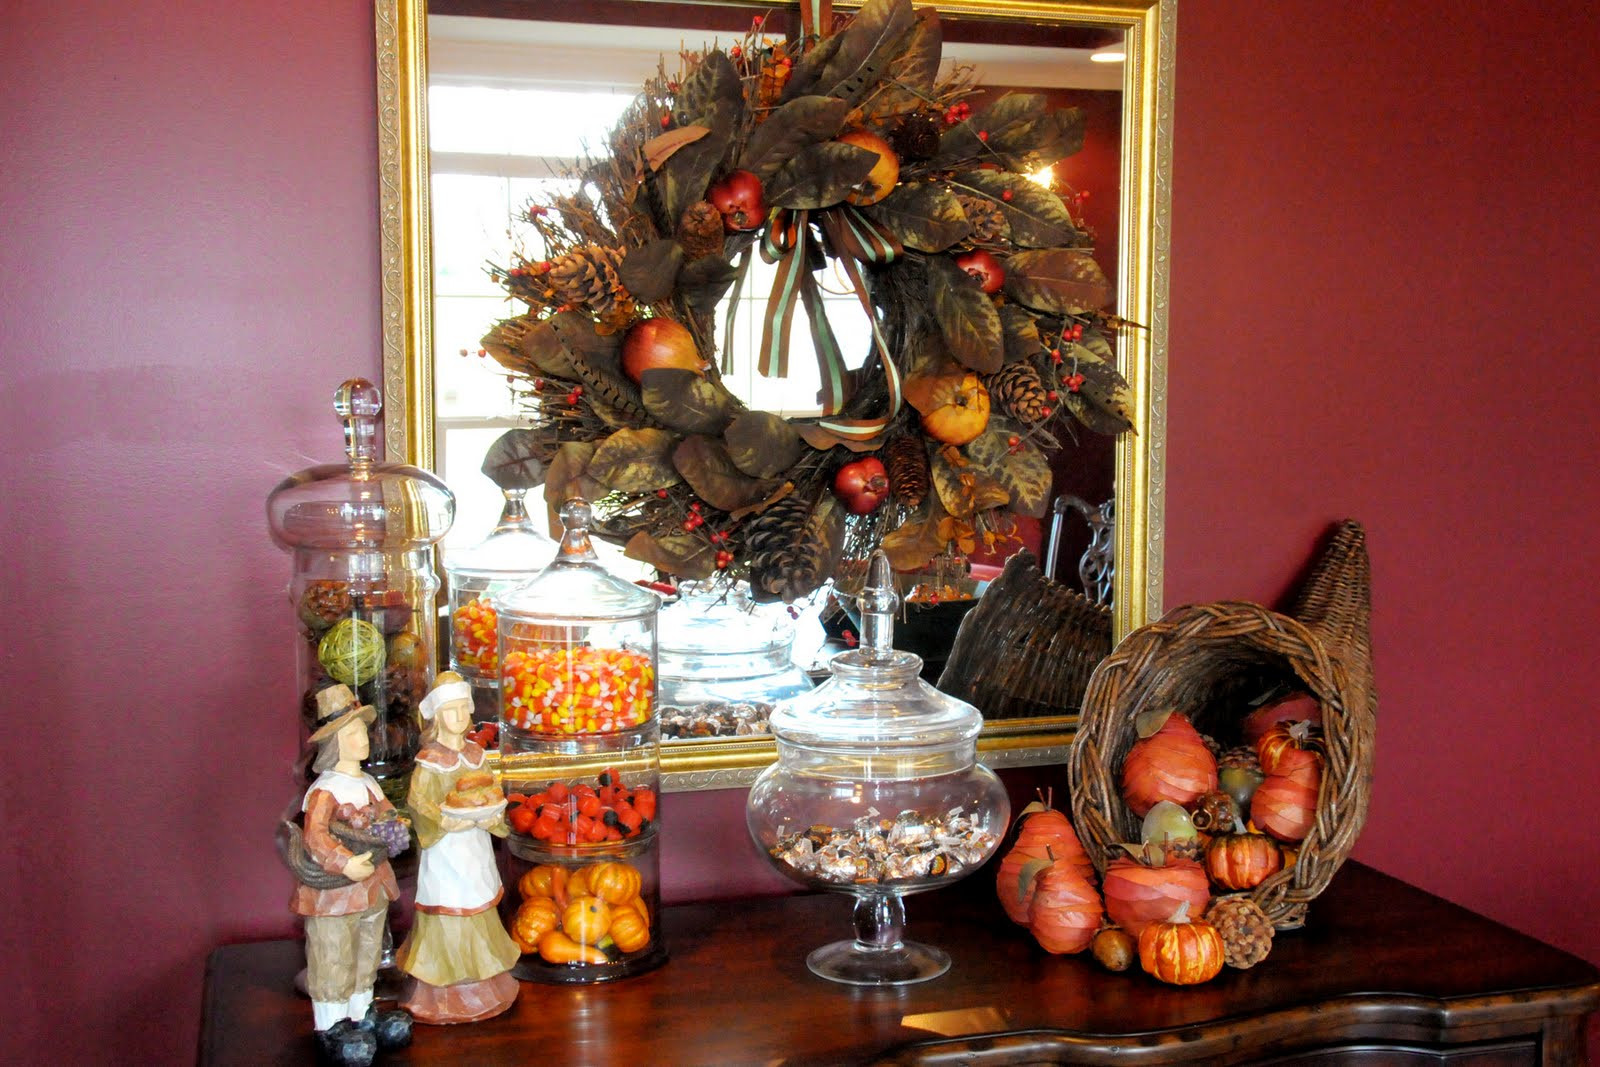 Turkey Decorations For Thanksgiving  Fall and Halloween Craft Ideas The Polka Dot Chair